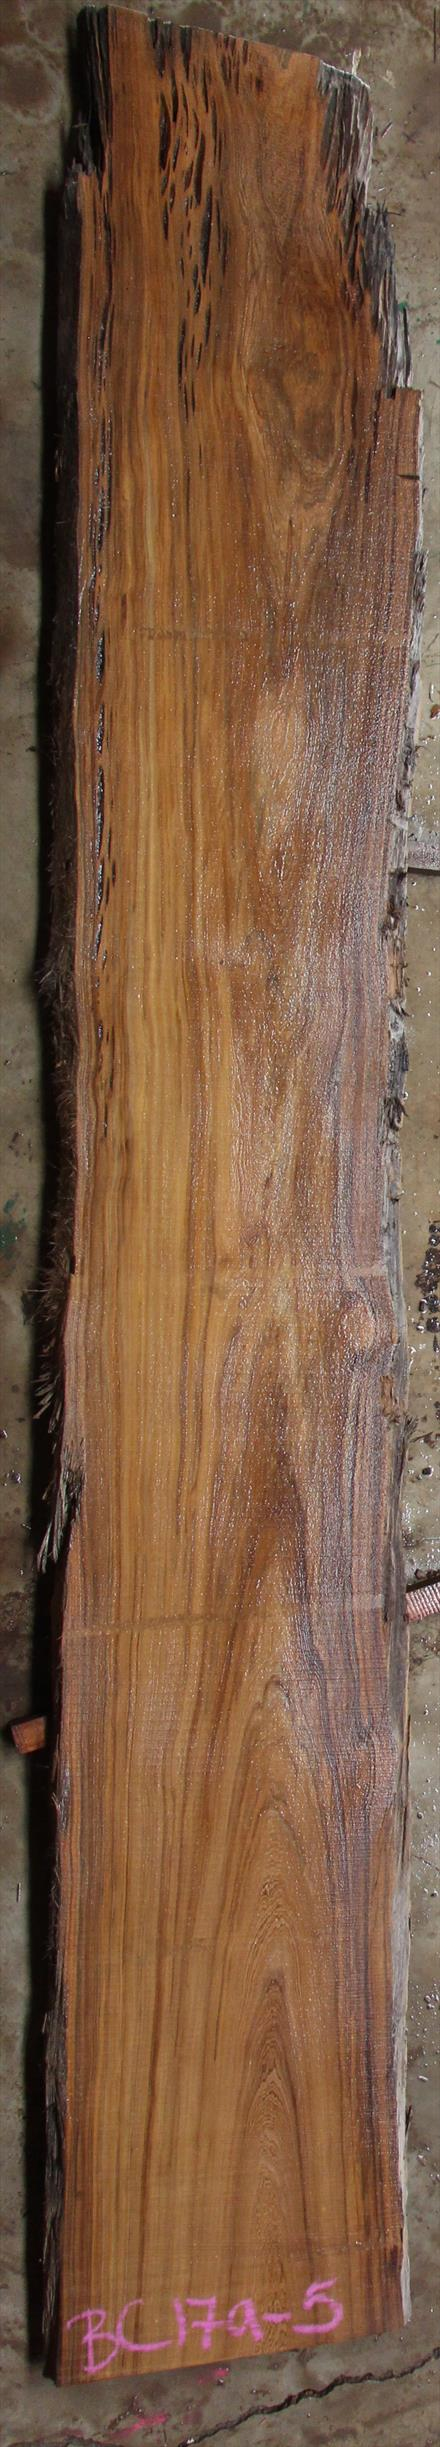 Buried Cypress Slab BC017a-05